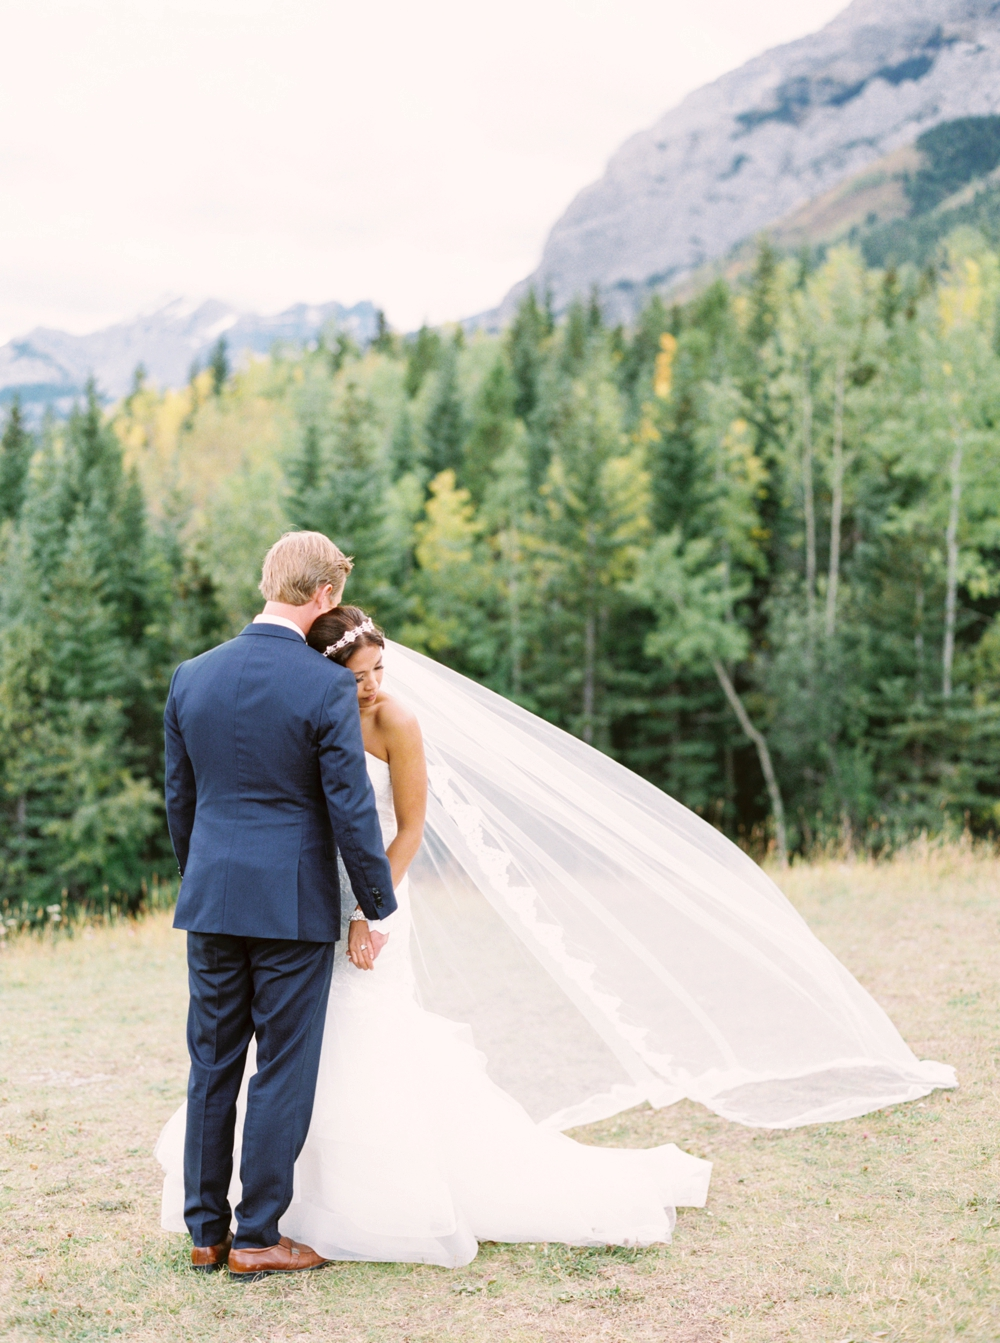 Calgary Wedding Photographers | Kananaskis Delta Lodge Wedding | Alberta Tent Wedding | Outdoor Wedding Ceremony | Elegant Wedding Decor